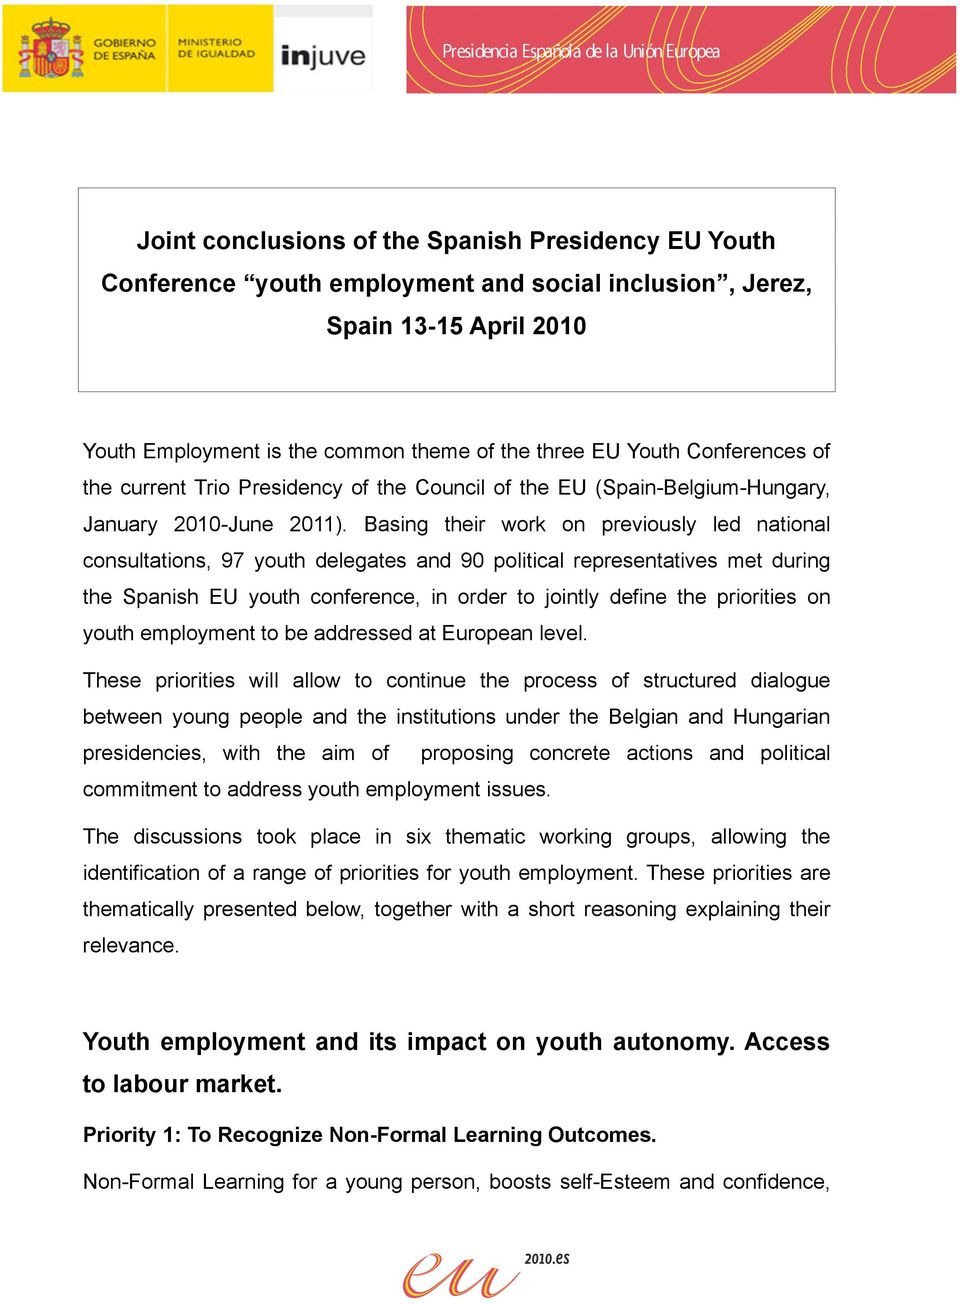 Basing their work on previously led national consultations, 97 youth delegates and 90 political representatives met during the Spanish EU youth conference, in order to jointly define the priorities